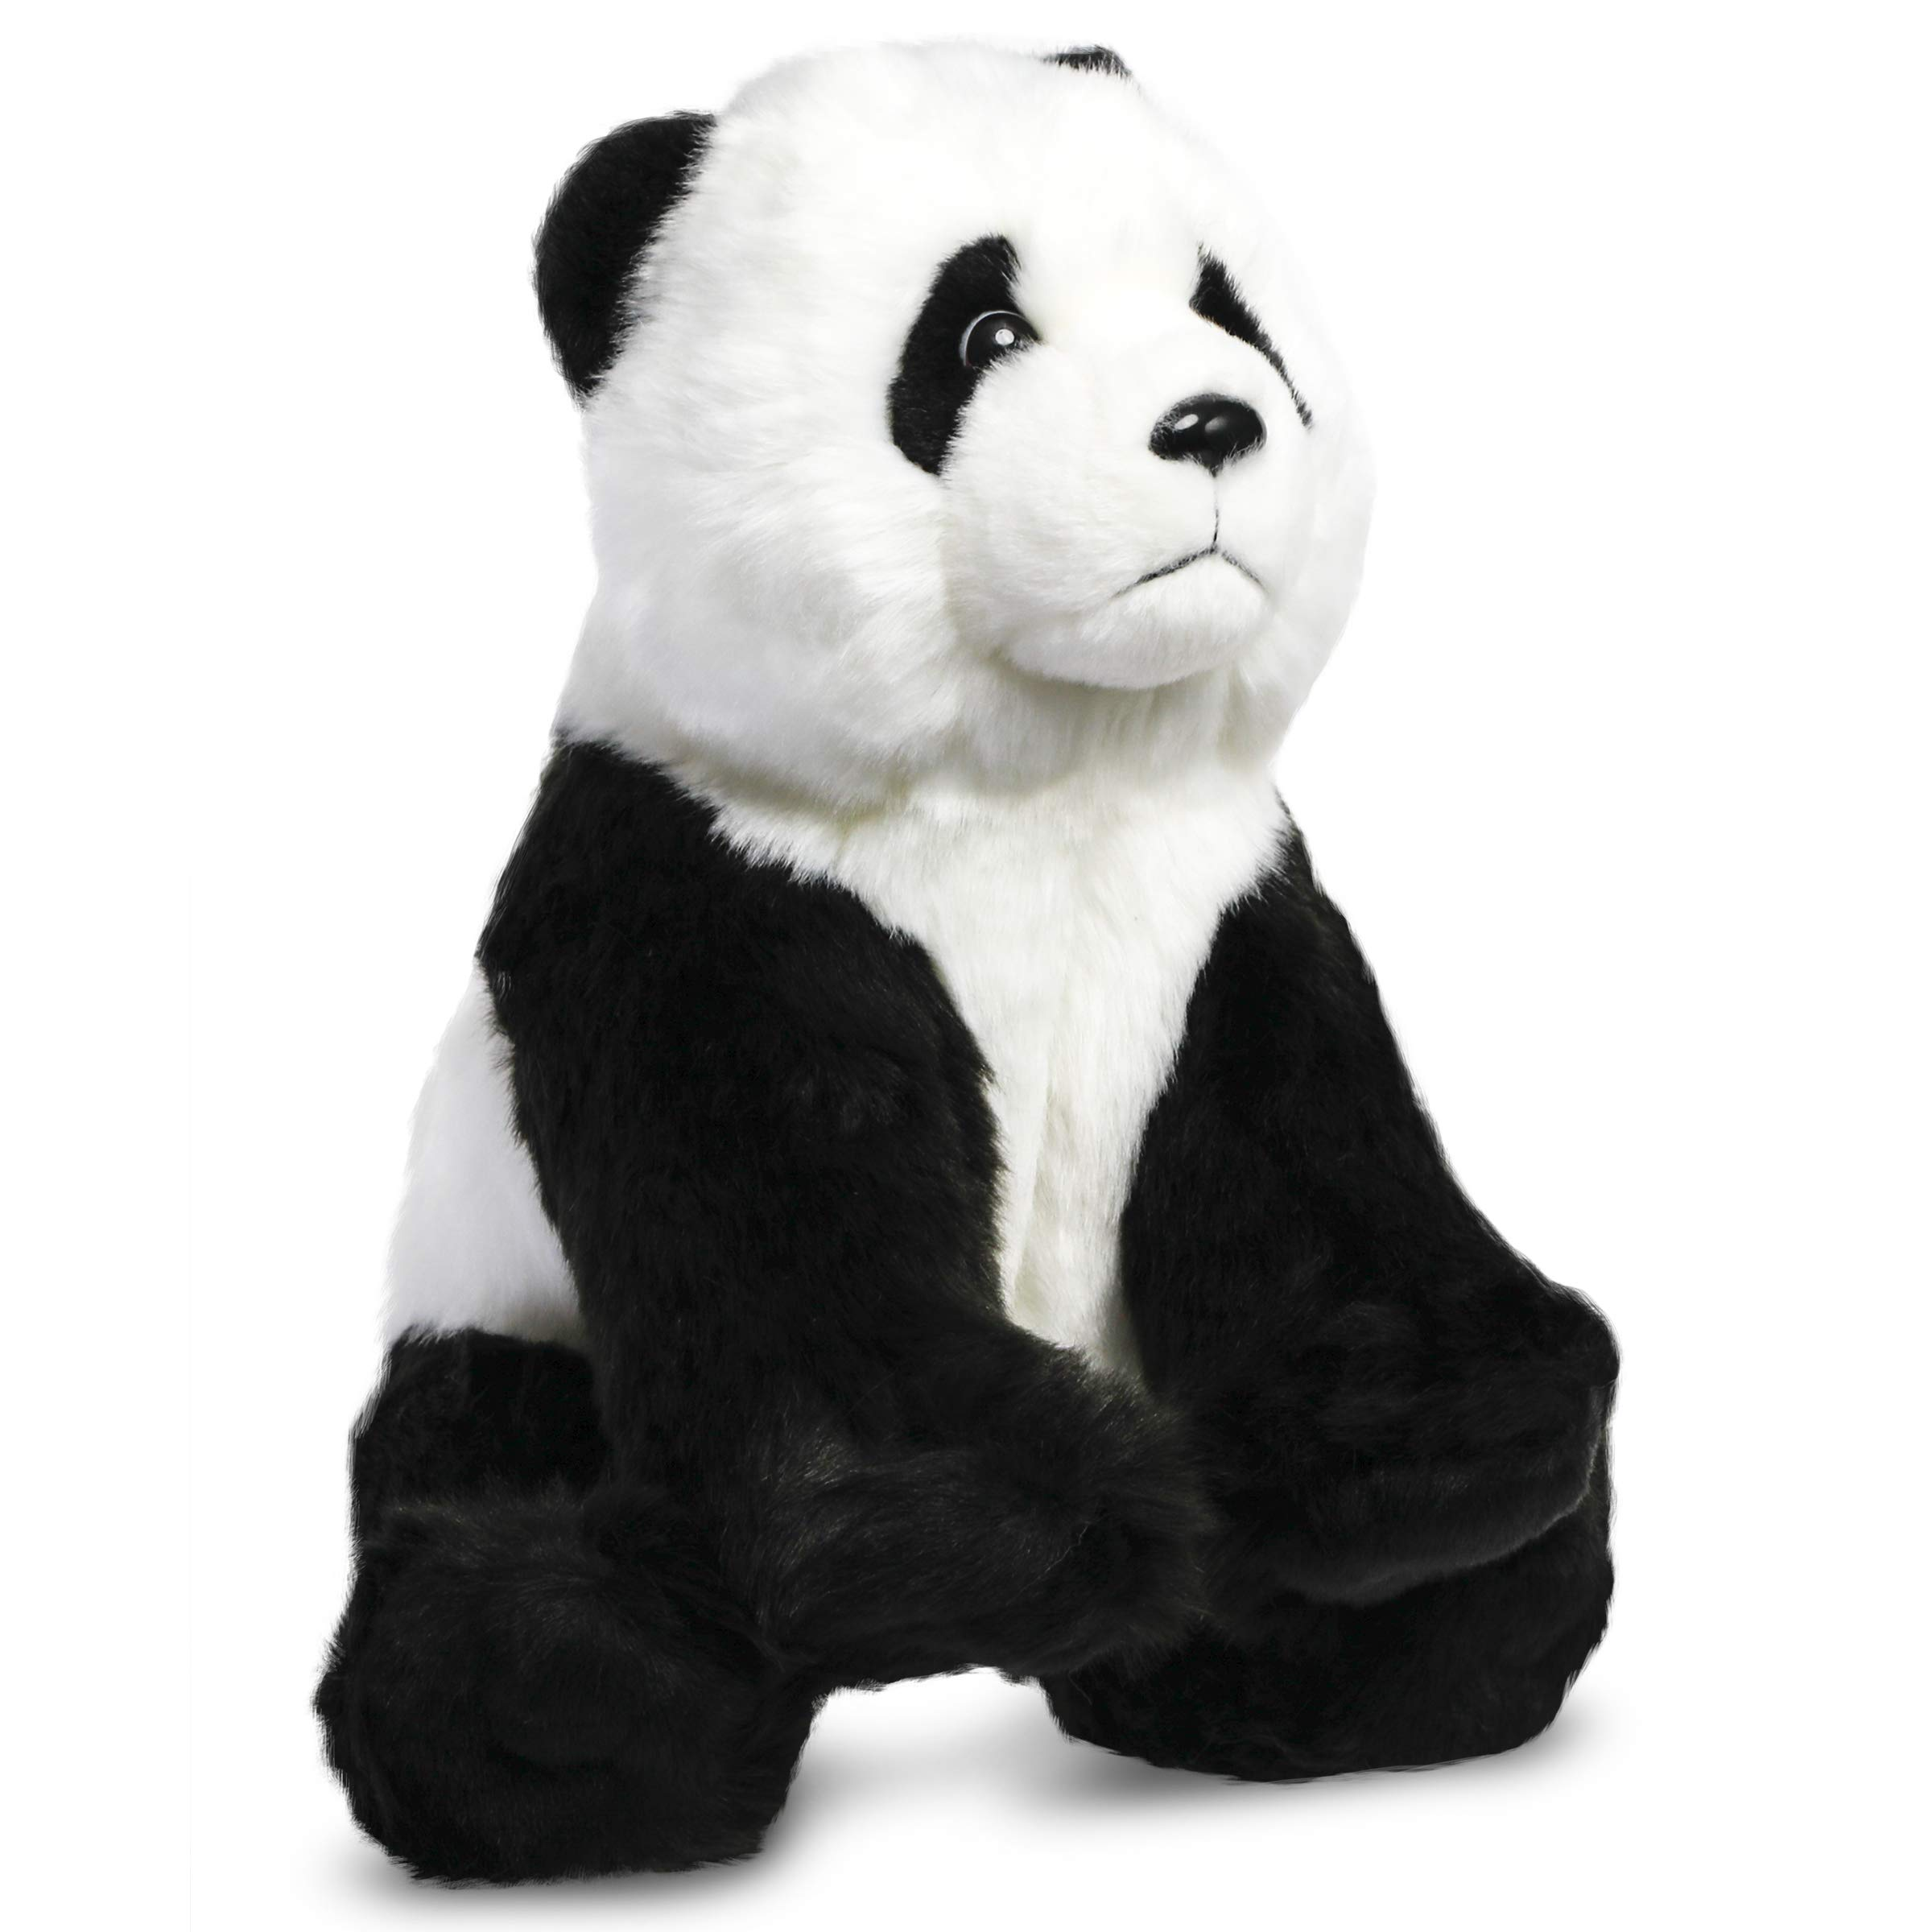 FAO Schwarz 10'' Panda Plush Stuffed Animal Toy, Ultra Soft and Snuggly Doll for Creative and Imagination Play, for Boys, Girls, Children Ages 3 and Up, Playroom & Nursery Pretend Zoo Pet by FAO Schwarz